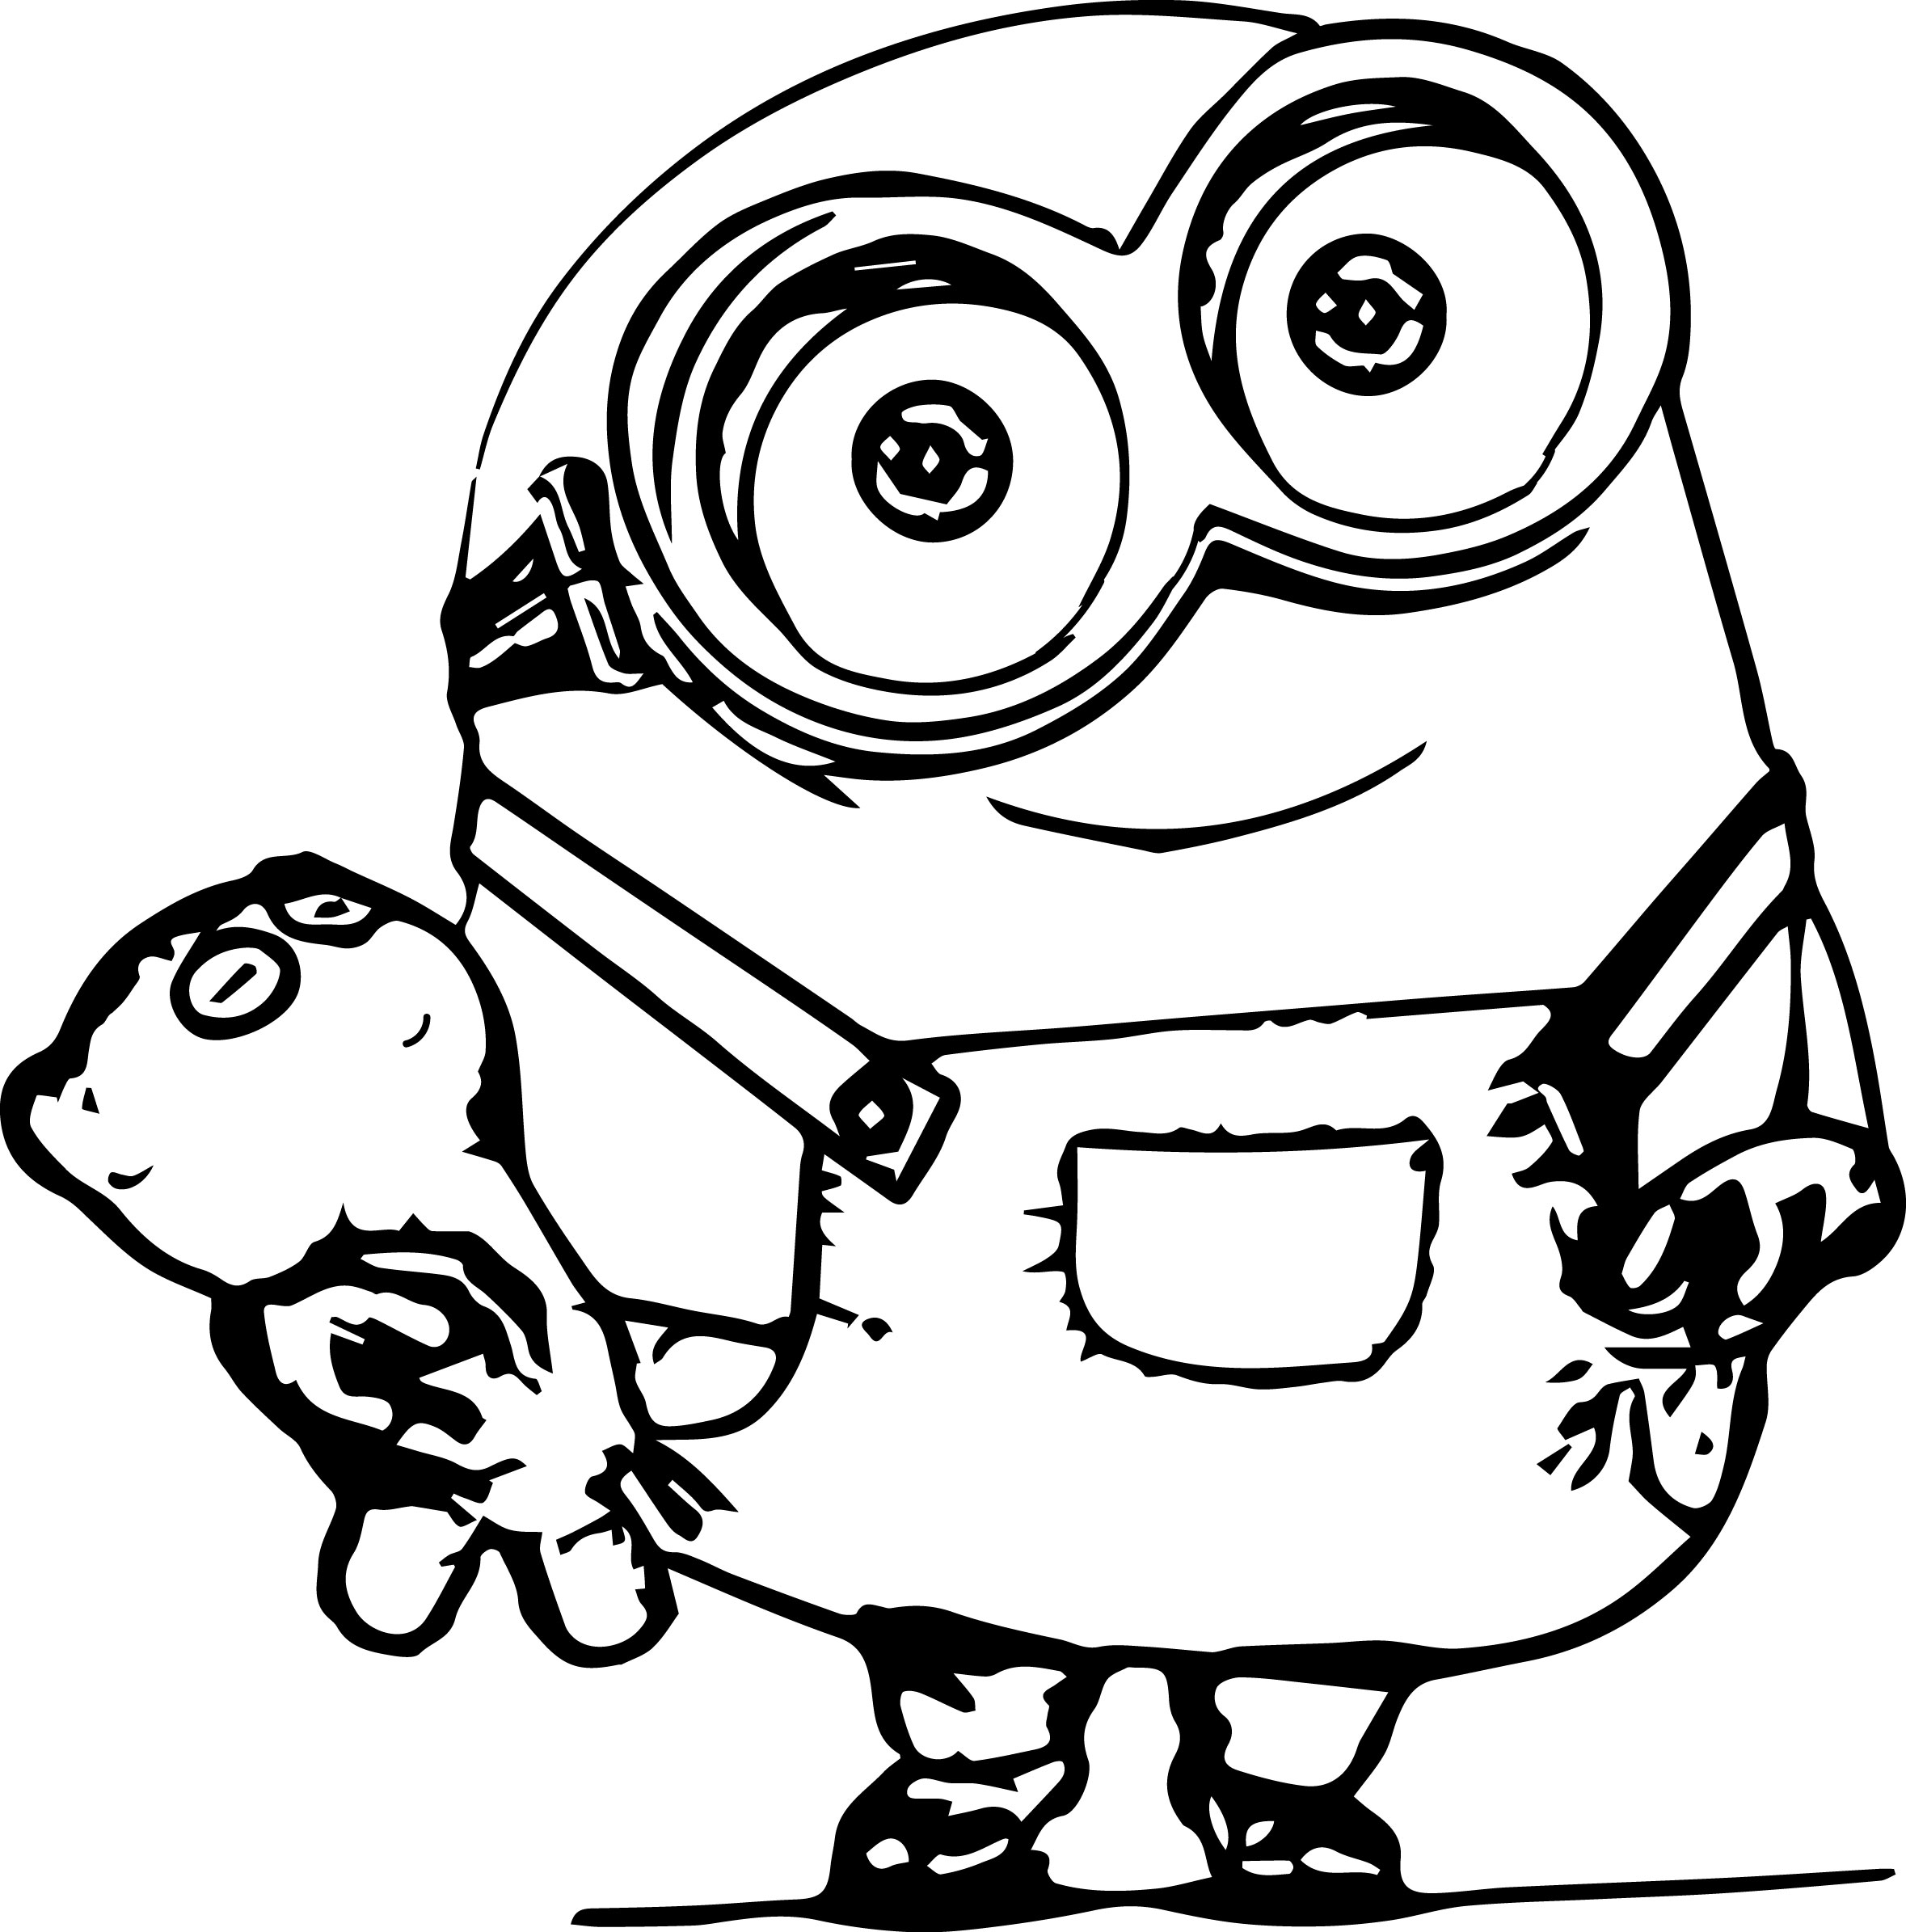 minion coloring page - Color In Pages